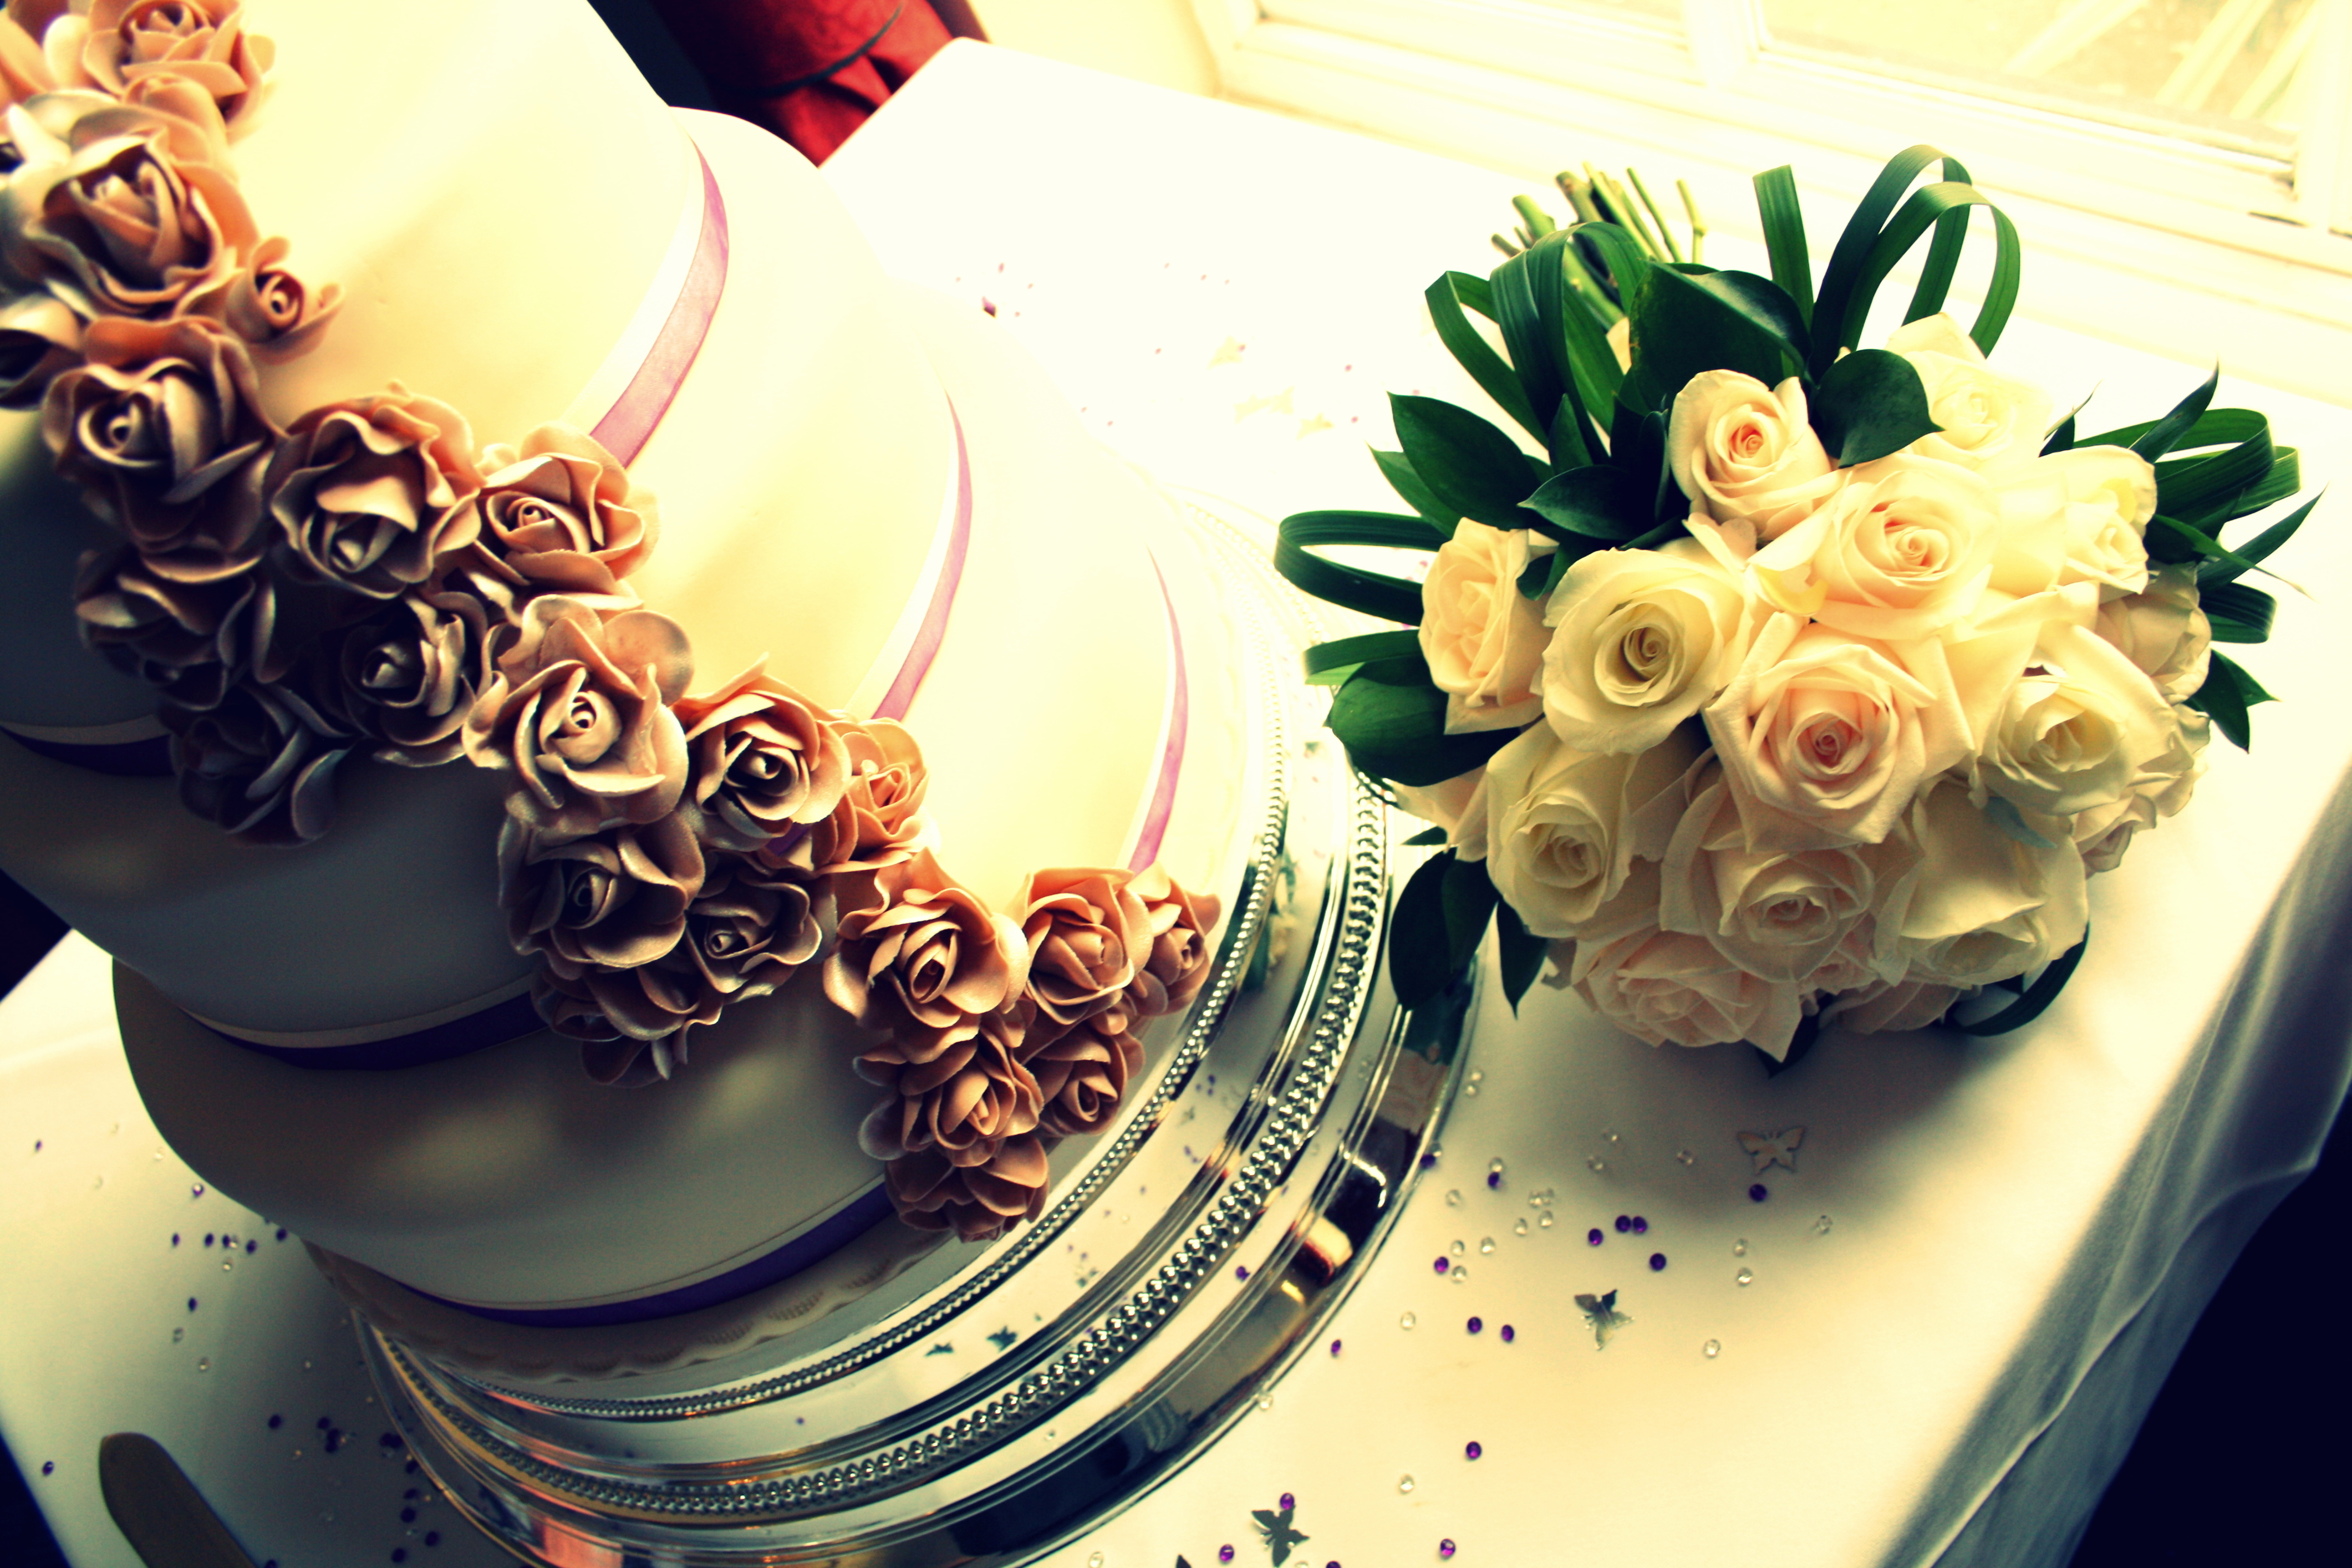 The best types of flowers for your wedding cake